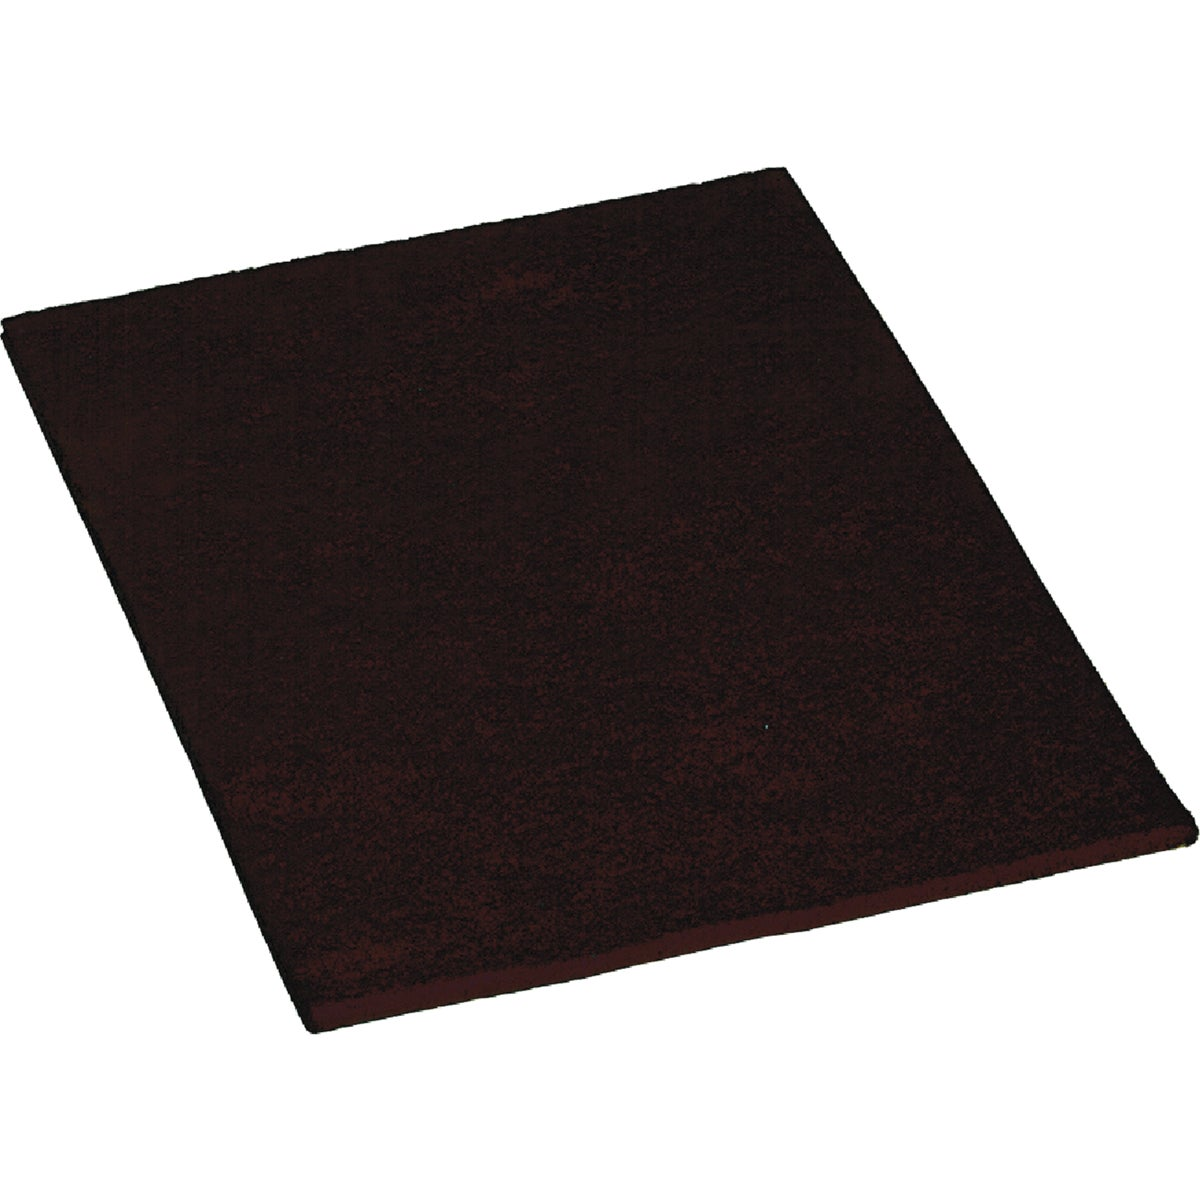 "4-1/2X6""BRN FELT BLANKET - 232548 by Shepherd Hardware"